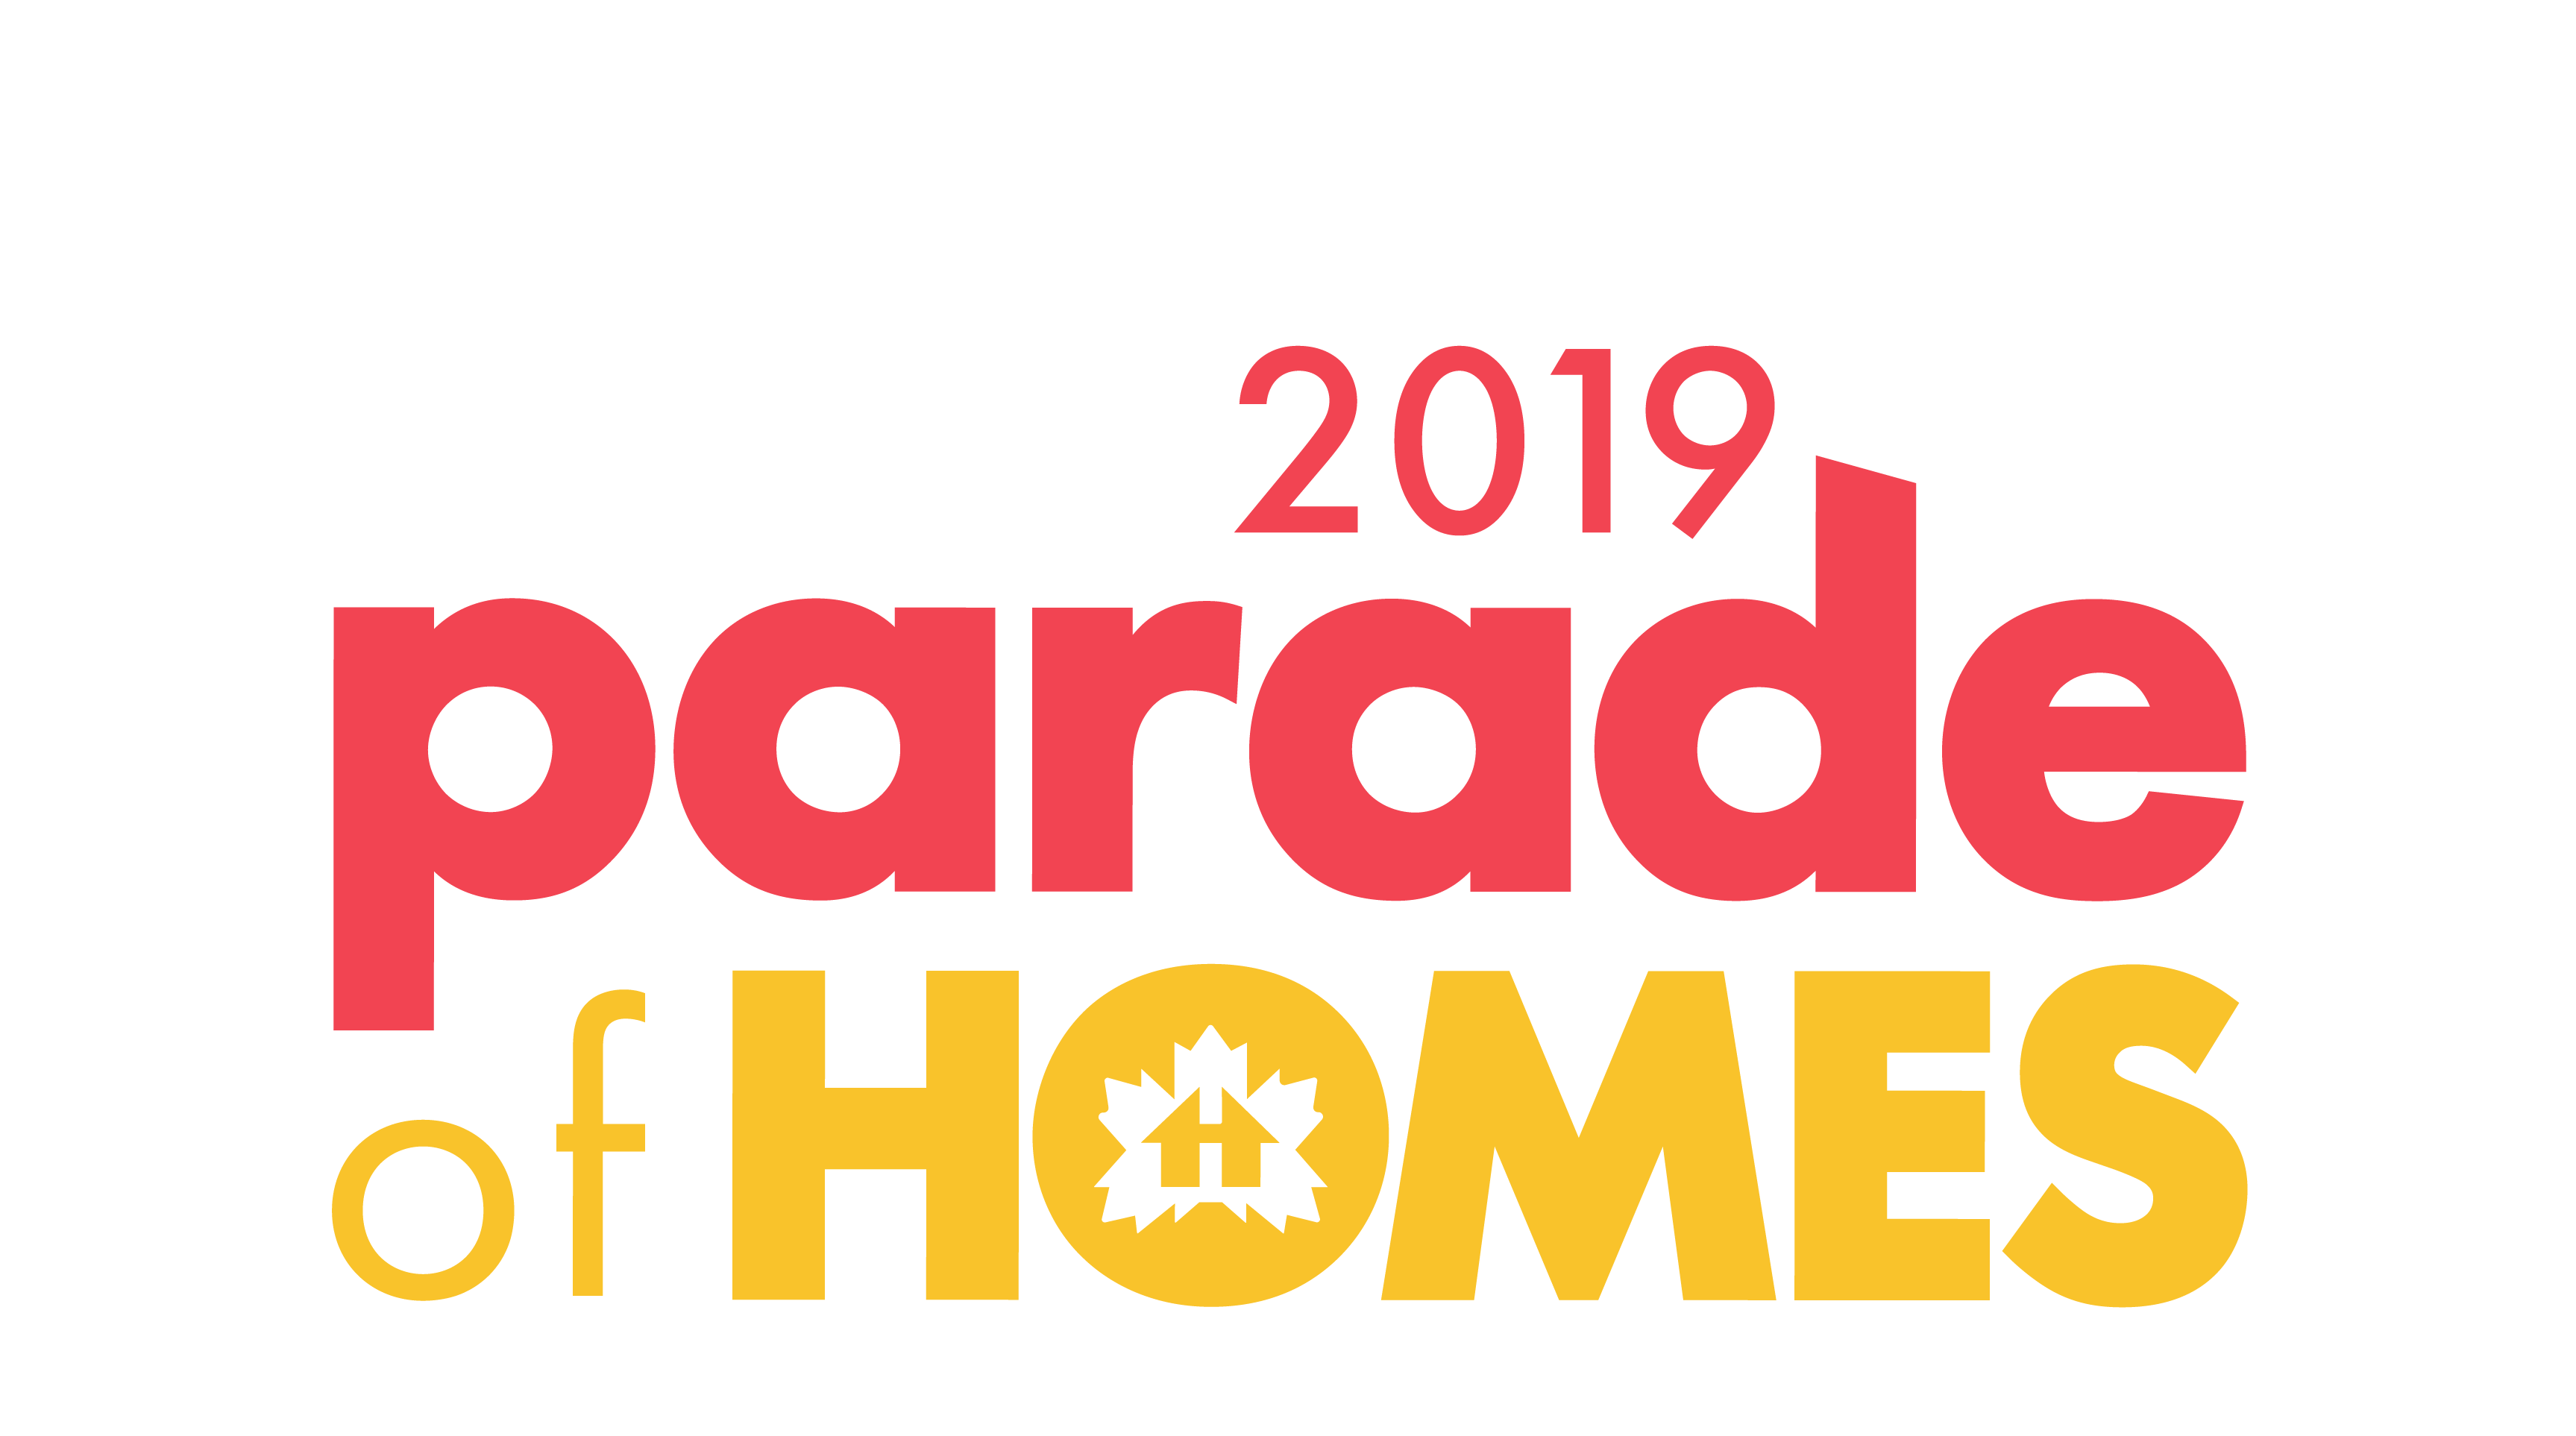 Parade of Homes 2019